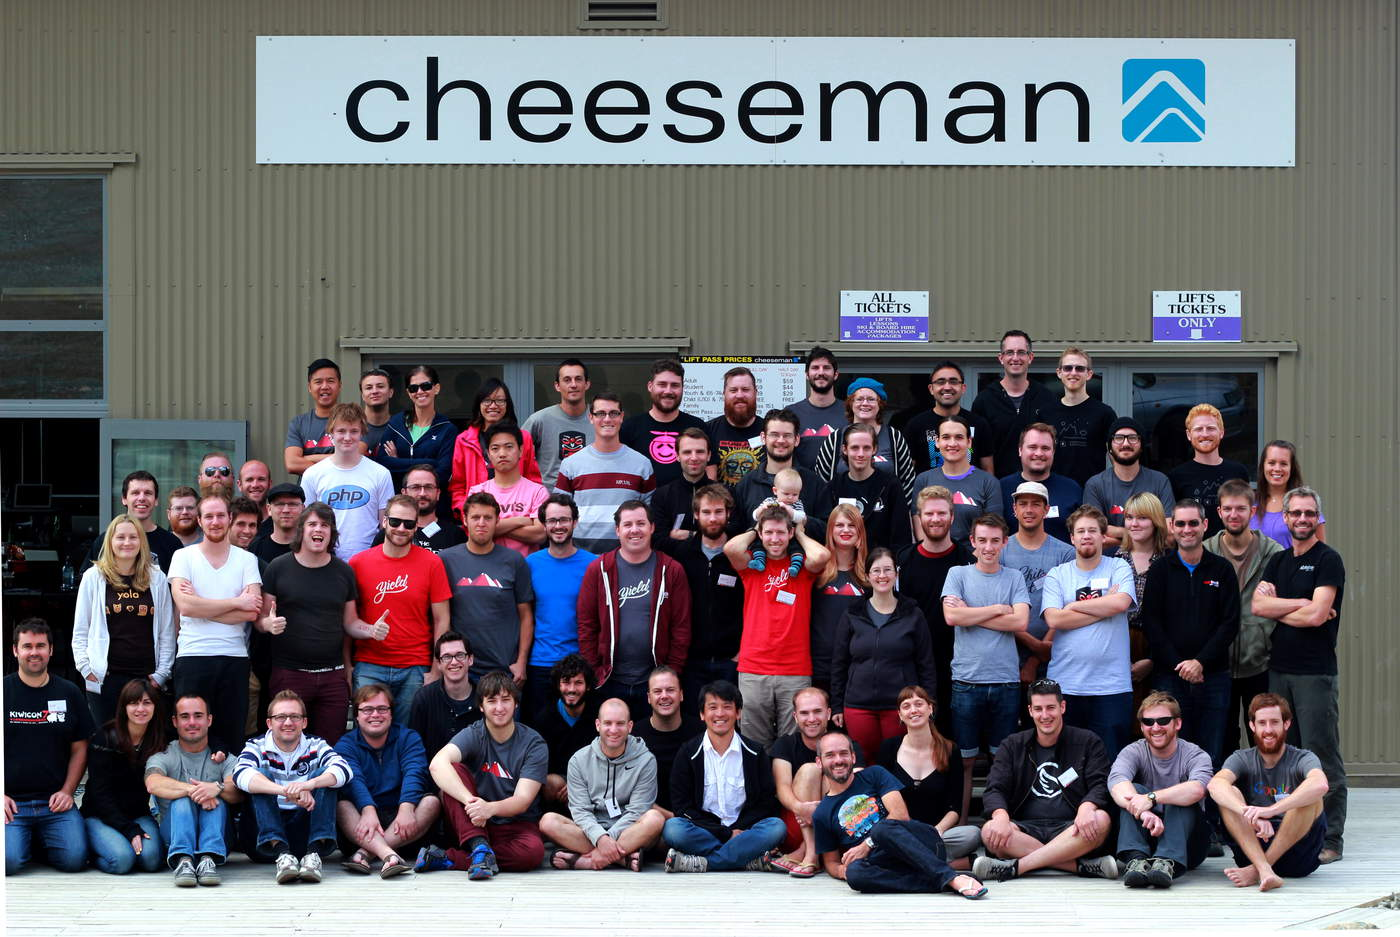 Rails Camp 2014 Cheeseman Group Photo